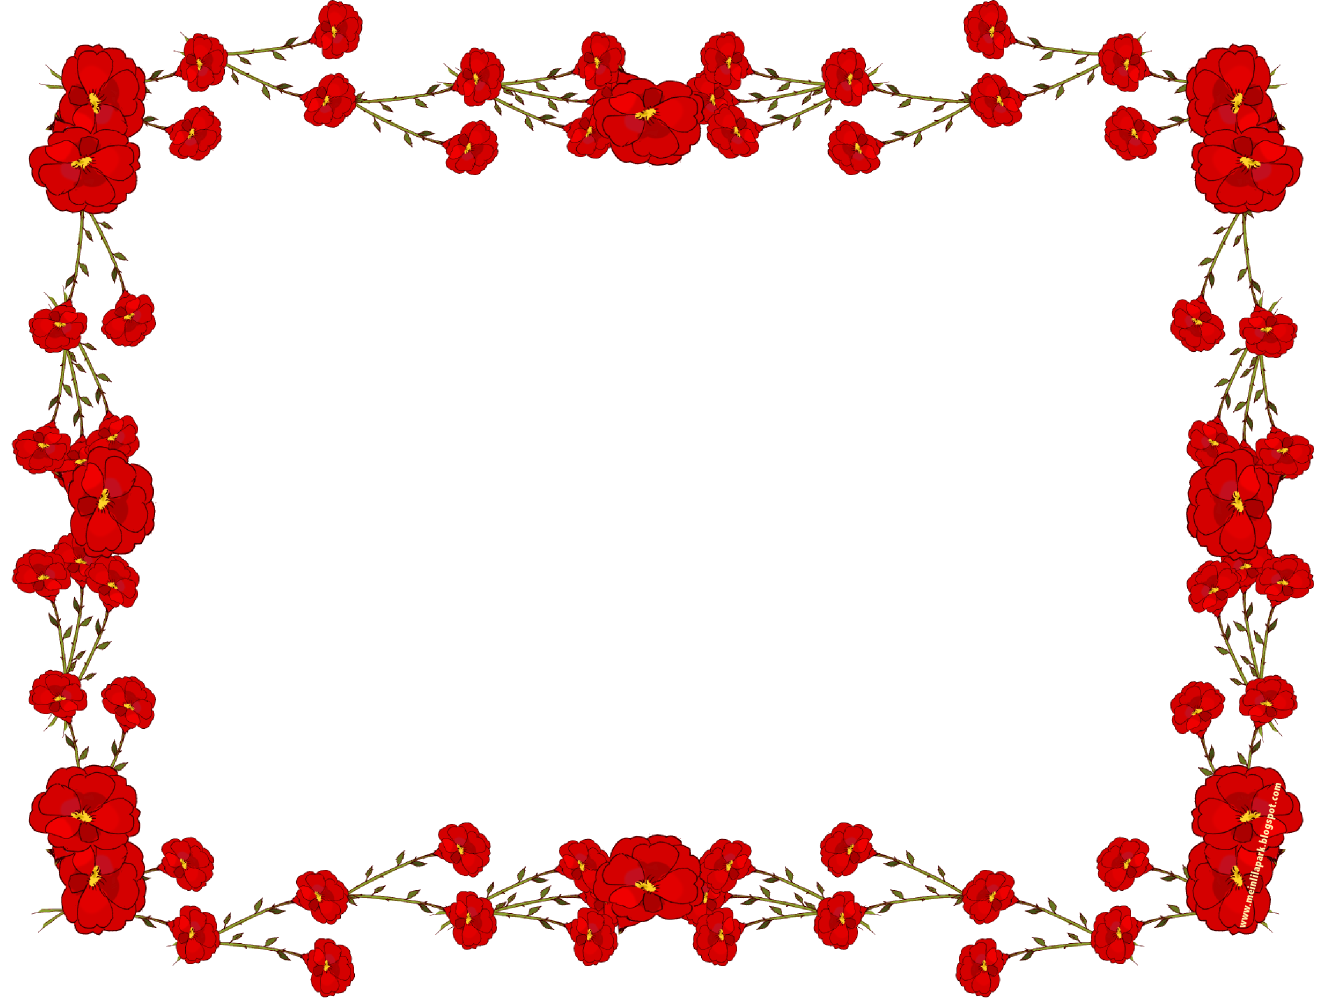 Picture Flower Rose Frame Transparent Red PNG Image